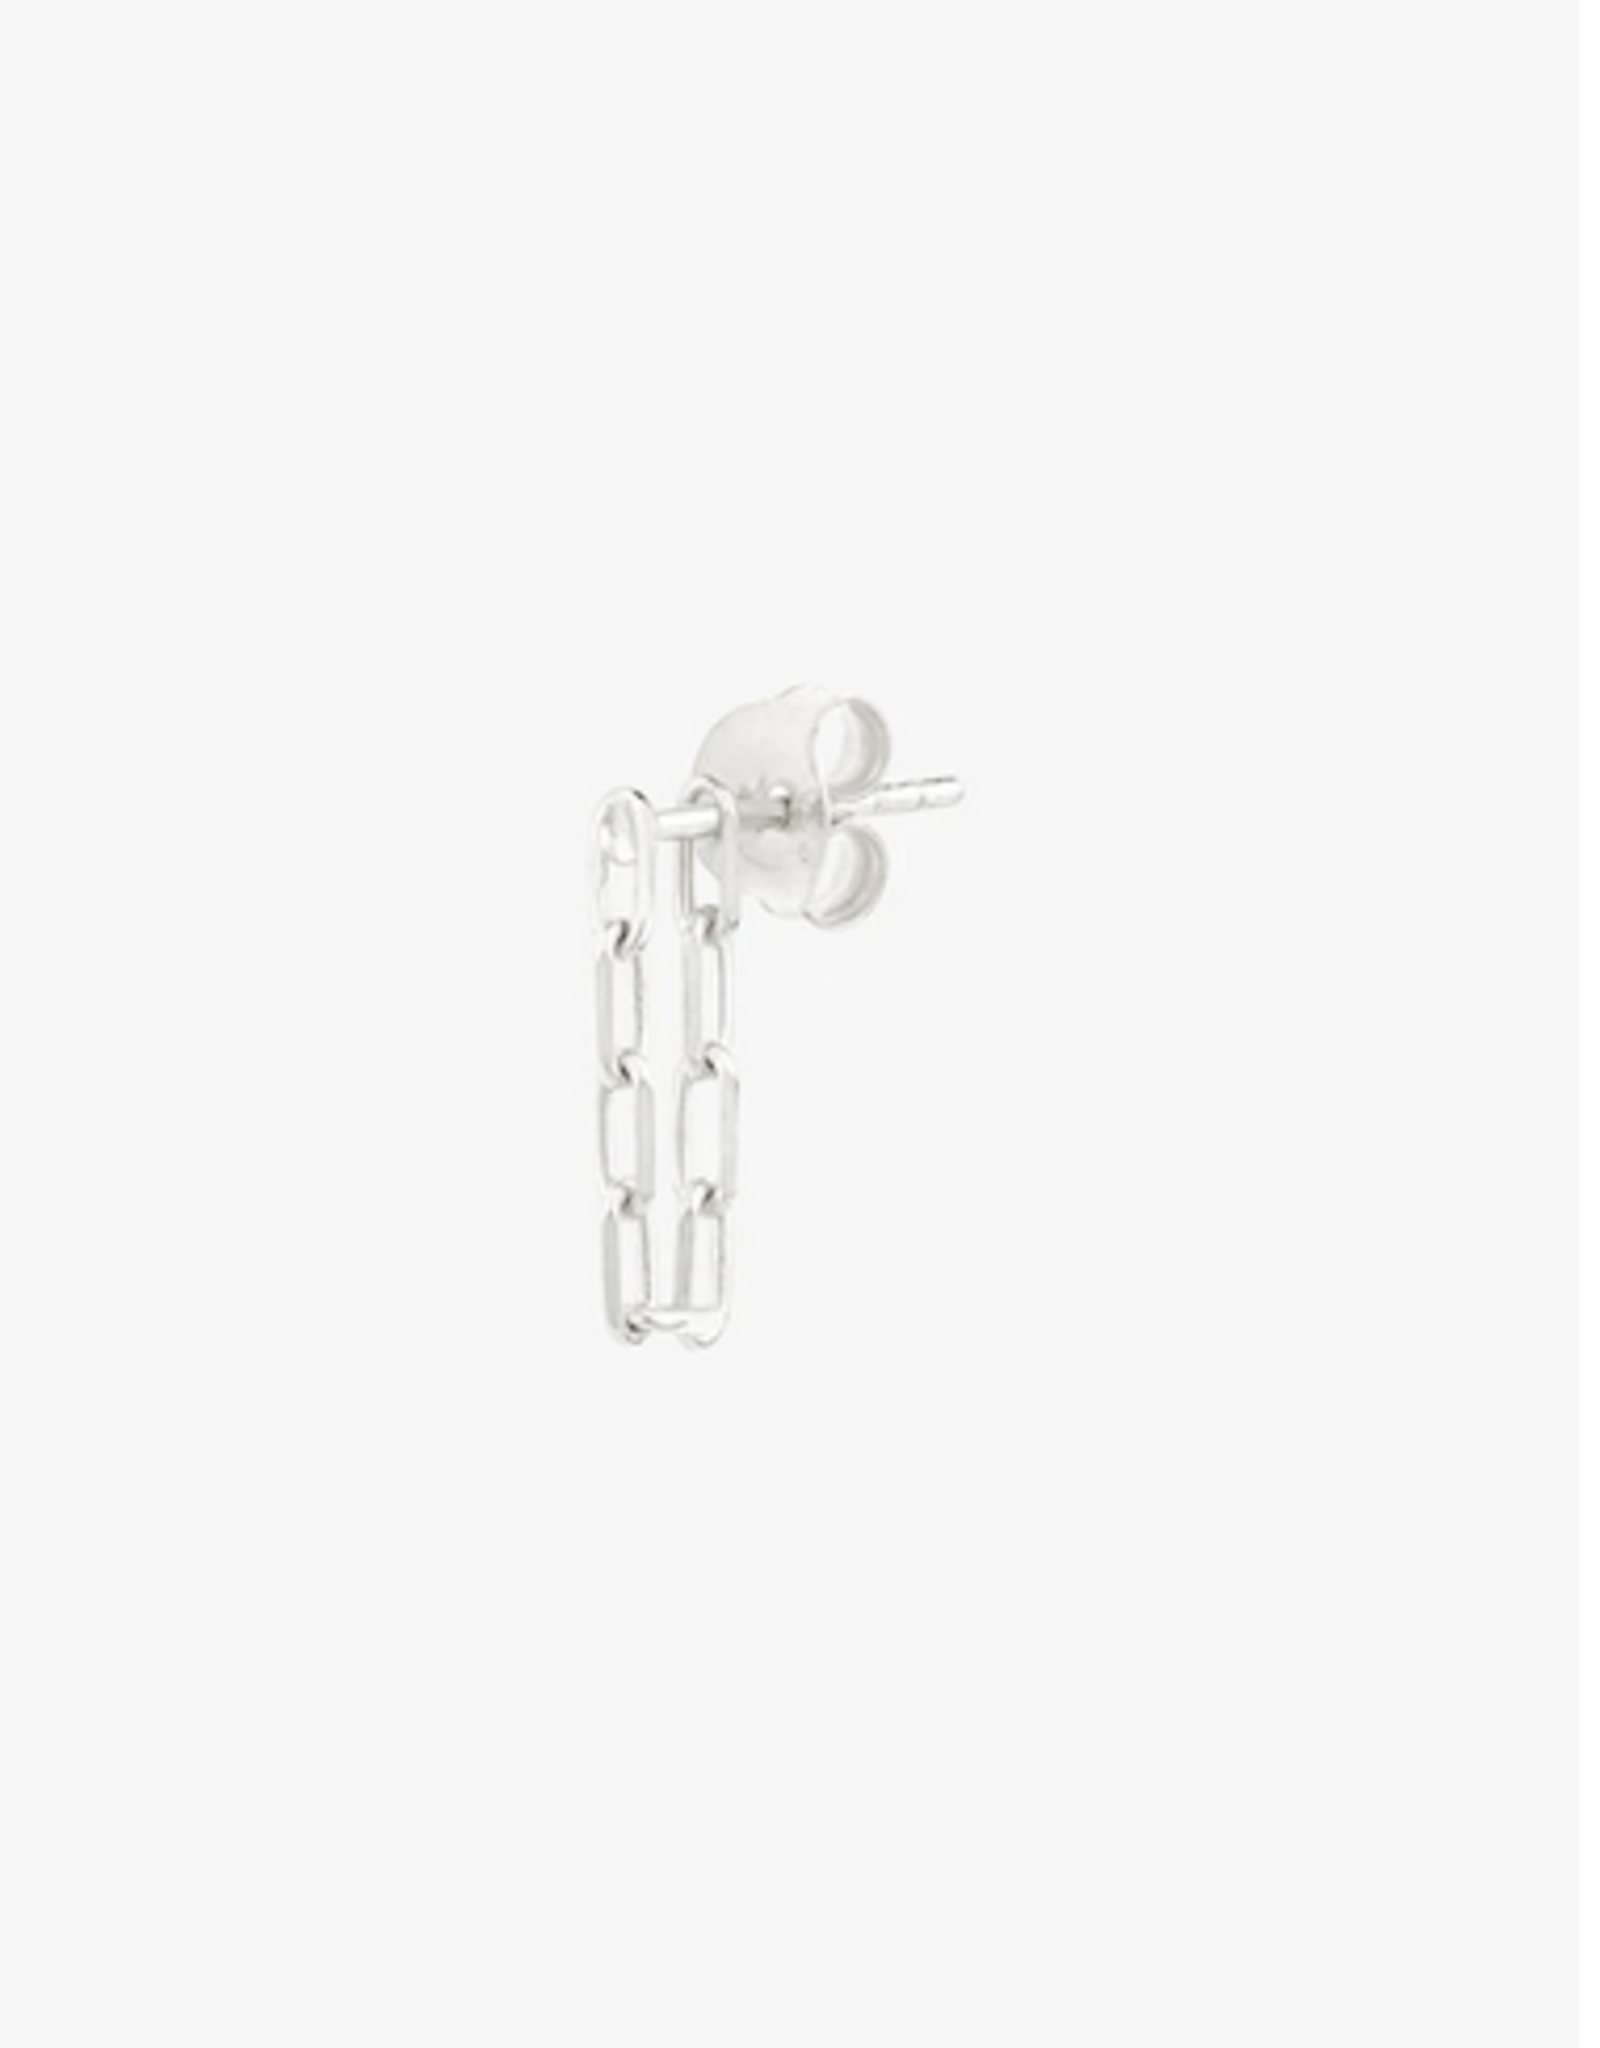 Wildthings Collectables Chain Earring Silver